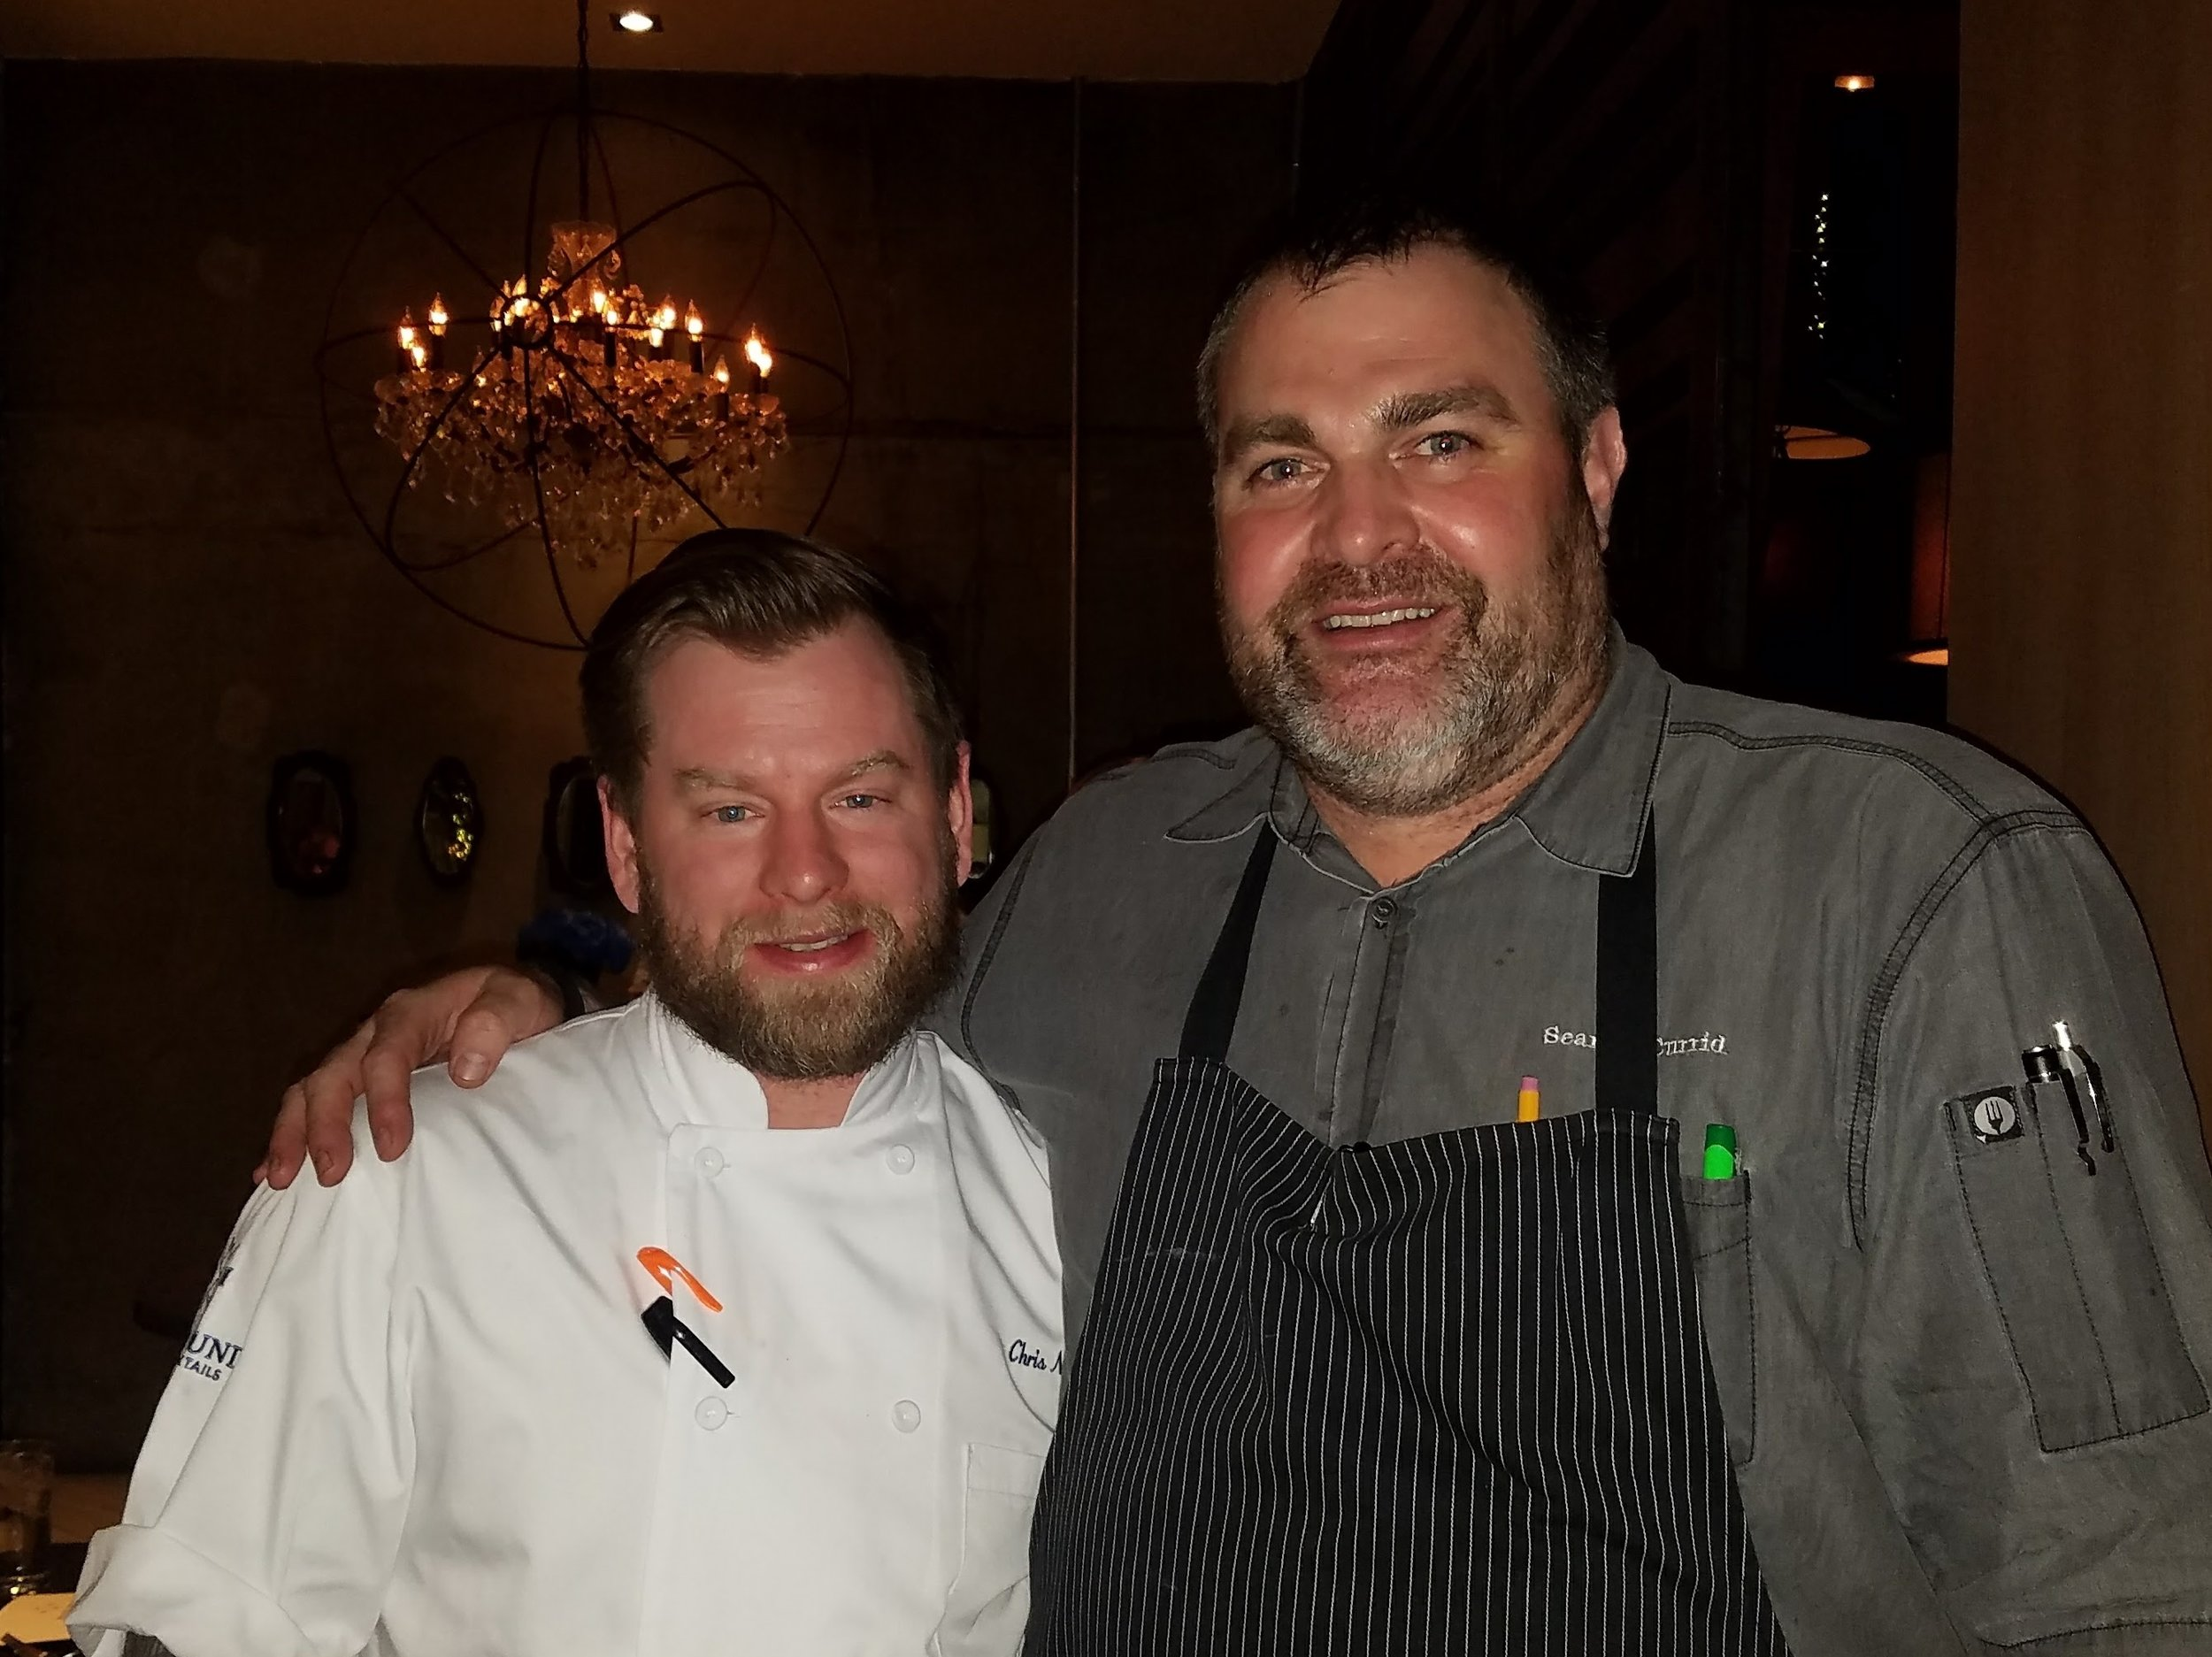 Chris Neff and Executive Chef Sean Currid